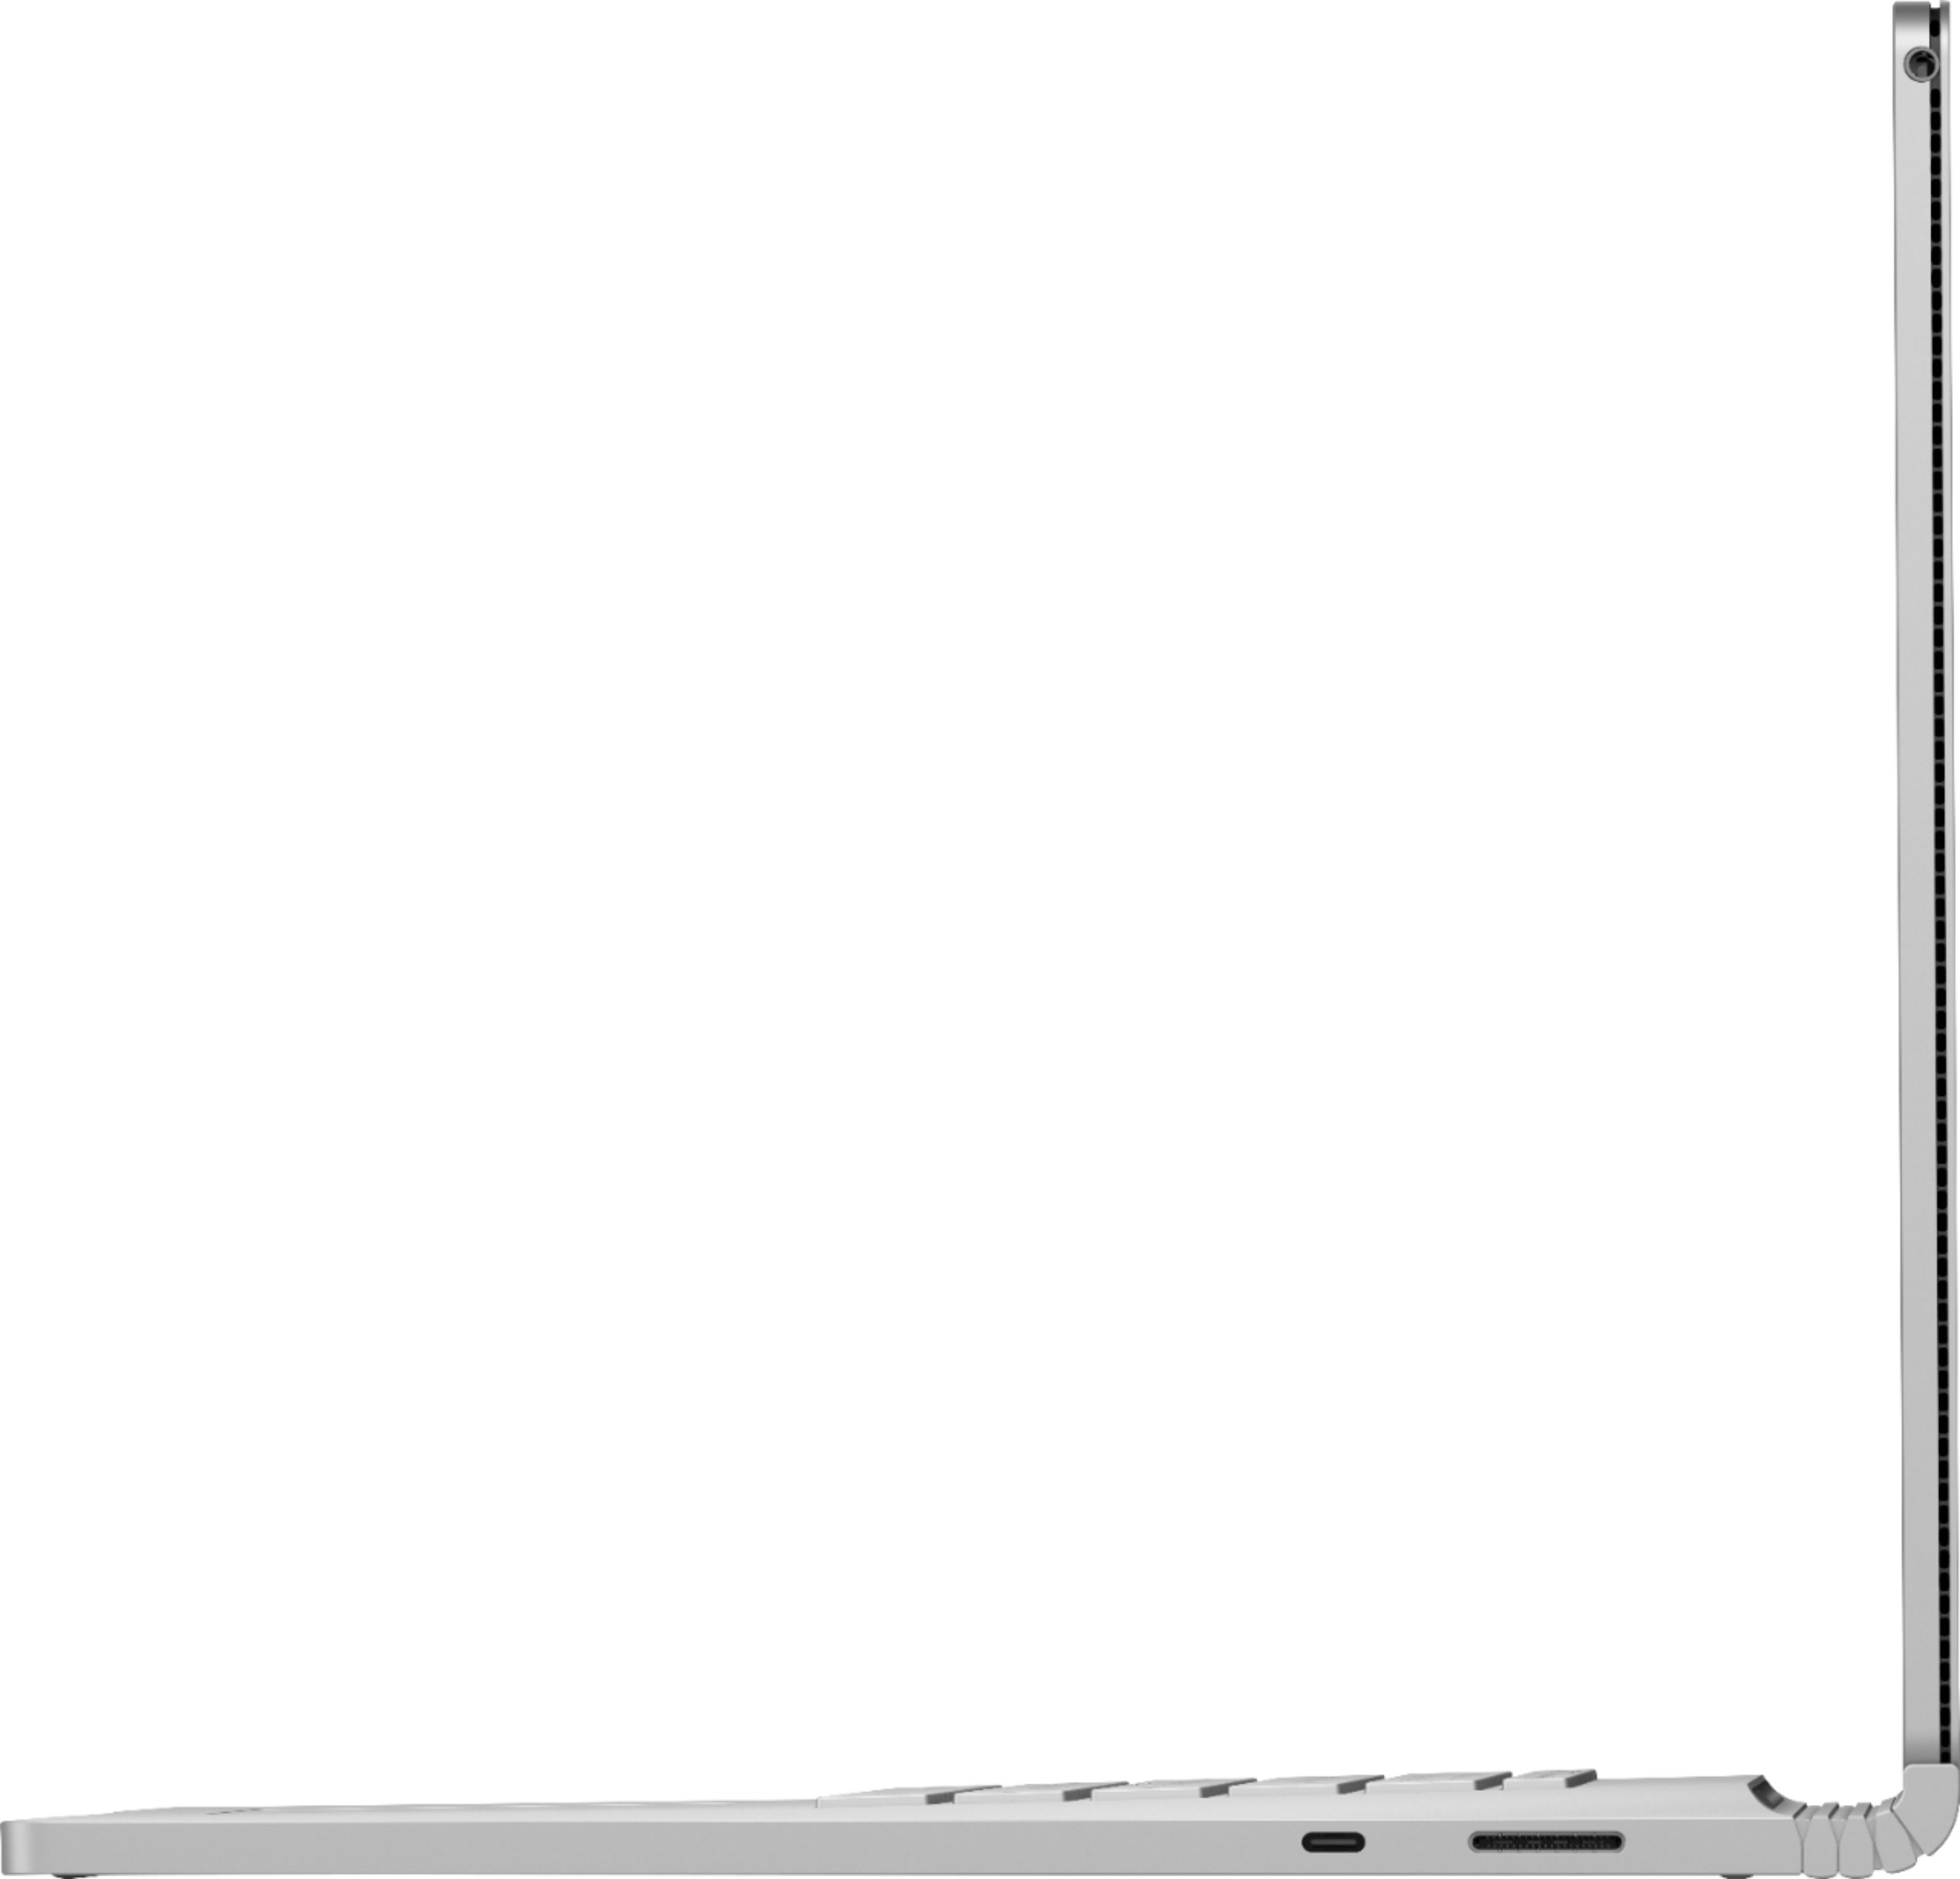 """Alt View Zoom 13. Microsoft - Surface Book 3 15"""" Touch-Screen PixelSense™ - 2-in-1 Laptop - Intel Core i7 - 32GB Memory - 2TB SSD - Platinum."""